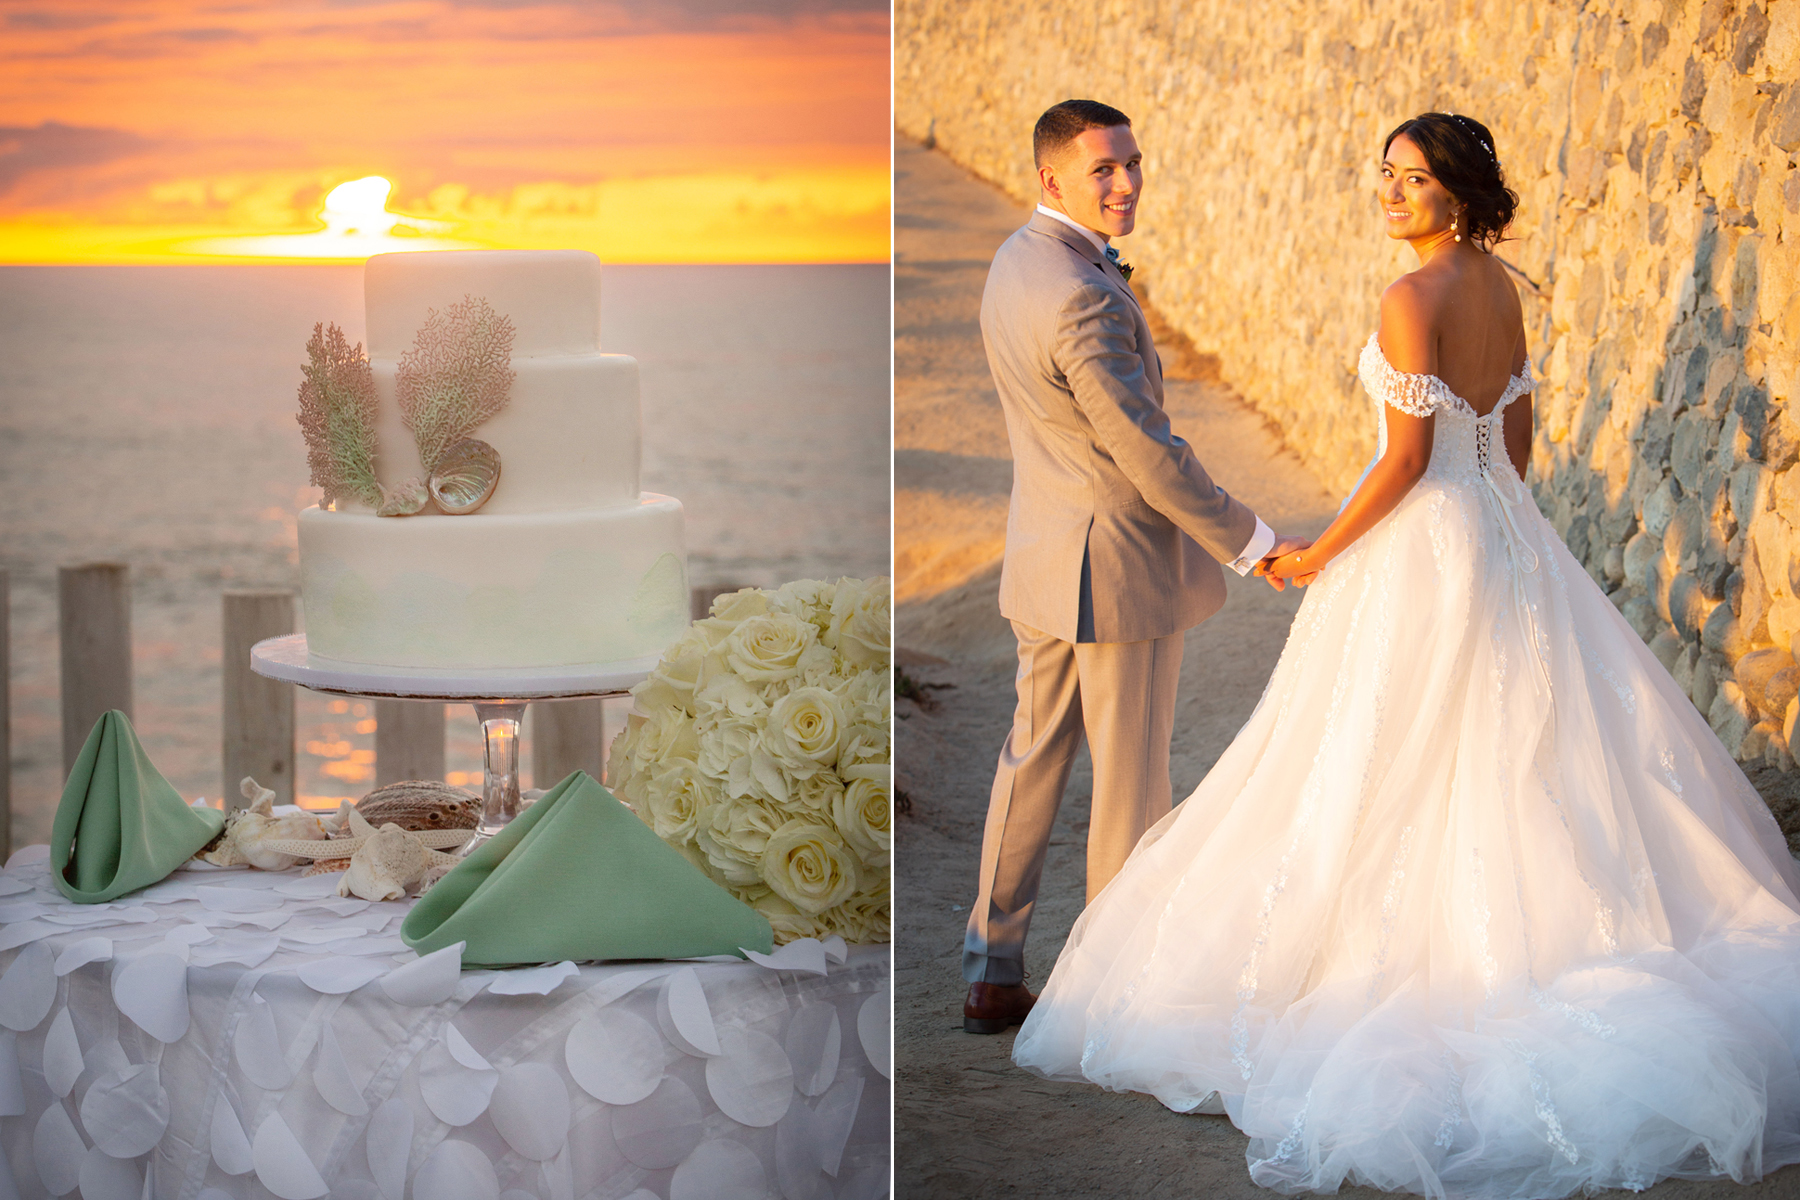 wedding_sunset_LaJolla_StoneWall